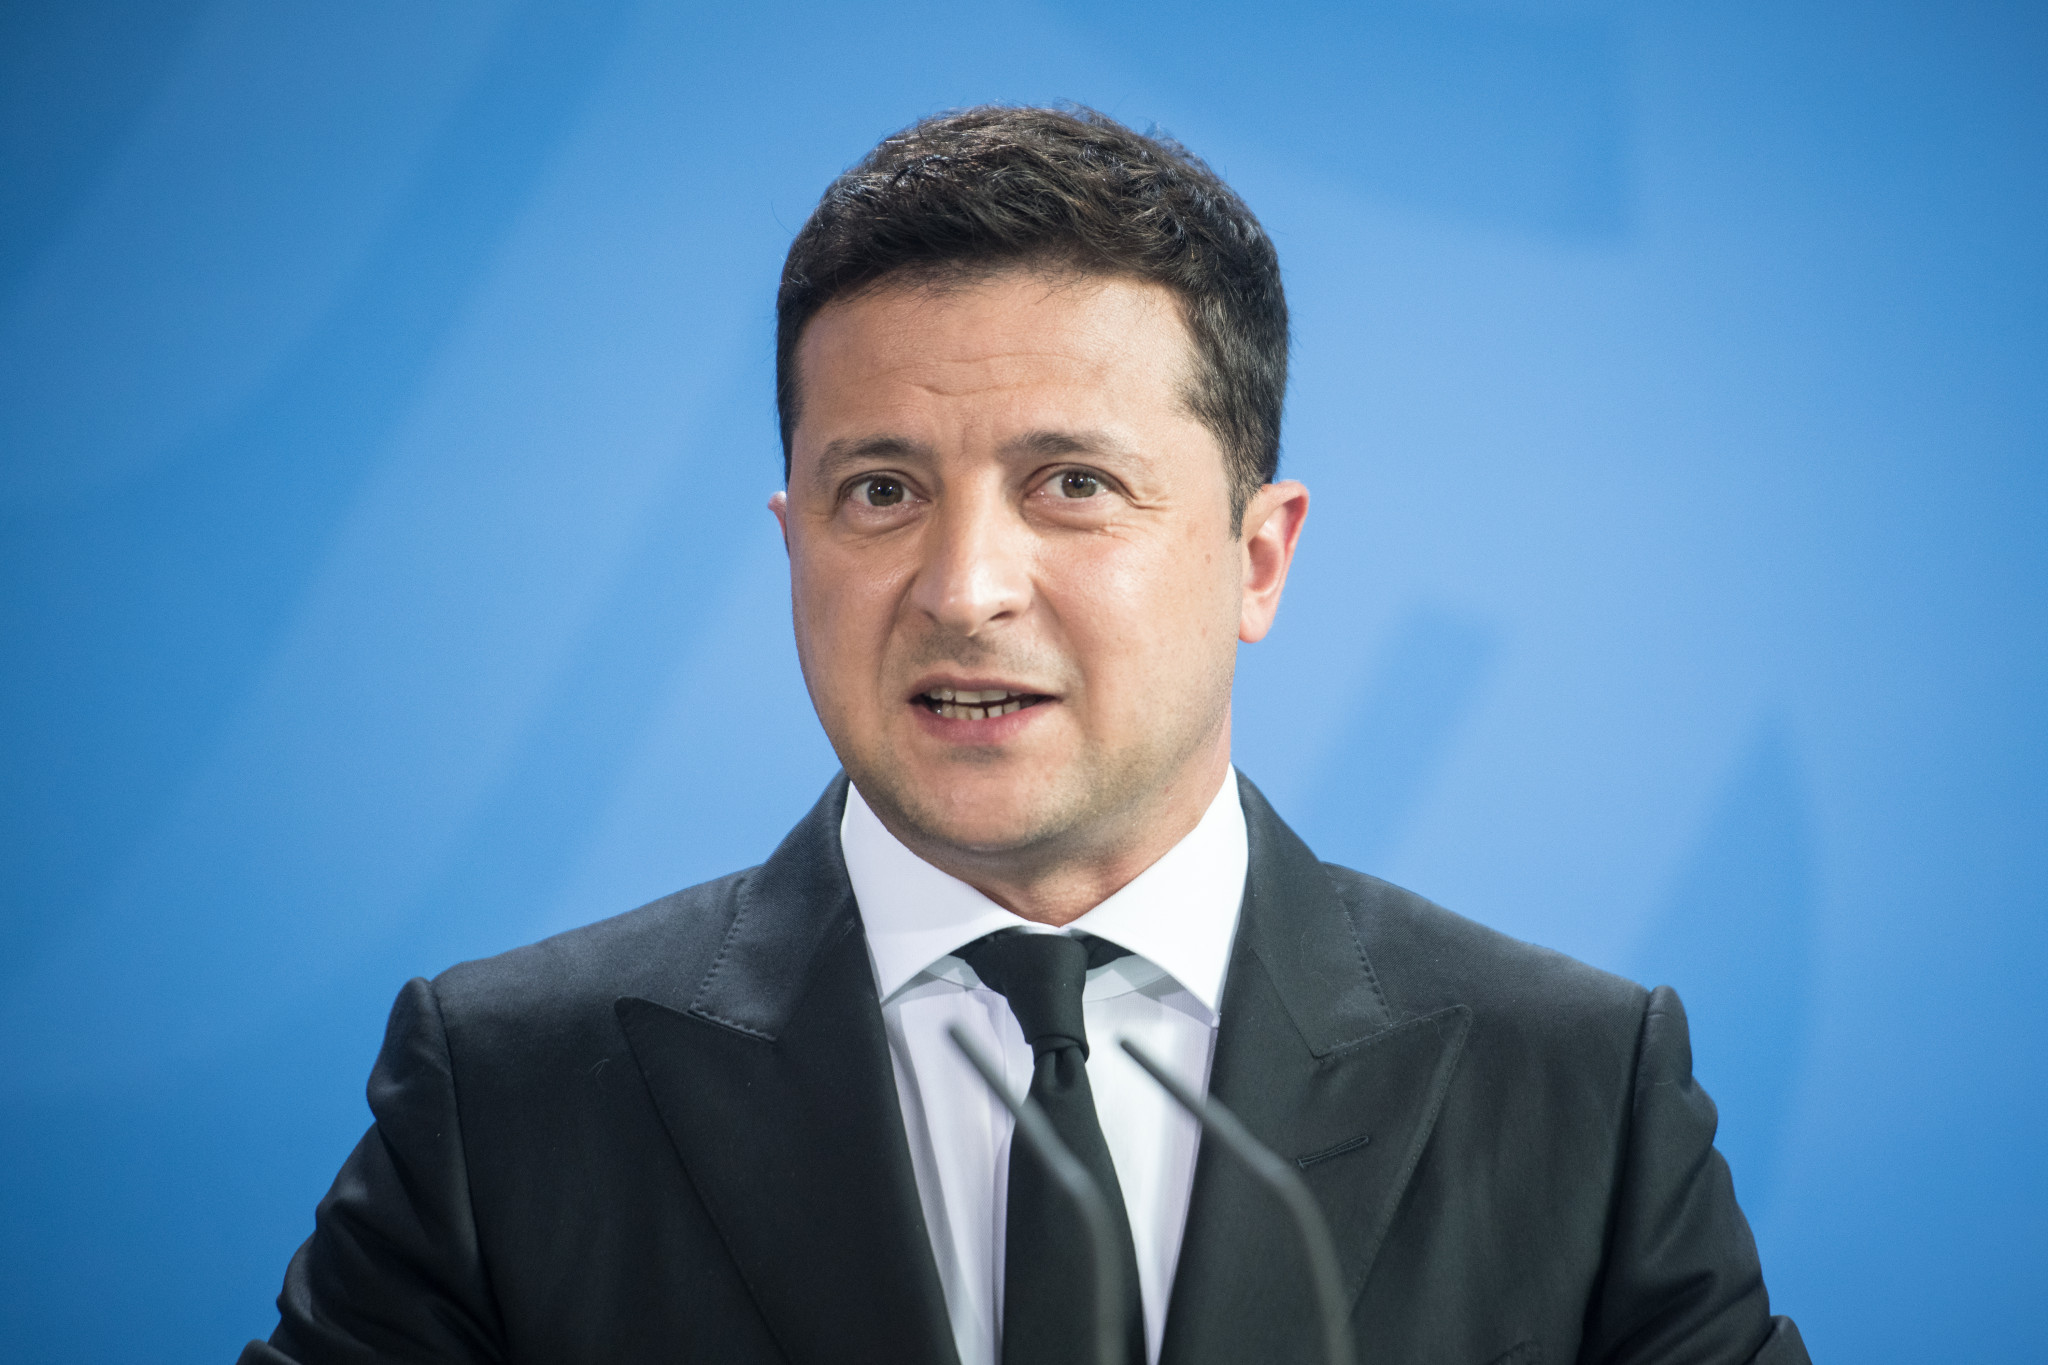 President Volodymyr Zelenskyy says Ukraine would like to enter the dialogue phase with the IOC over hosting a future edition of the Winter Olympics ©Getty Images